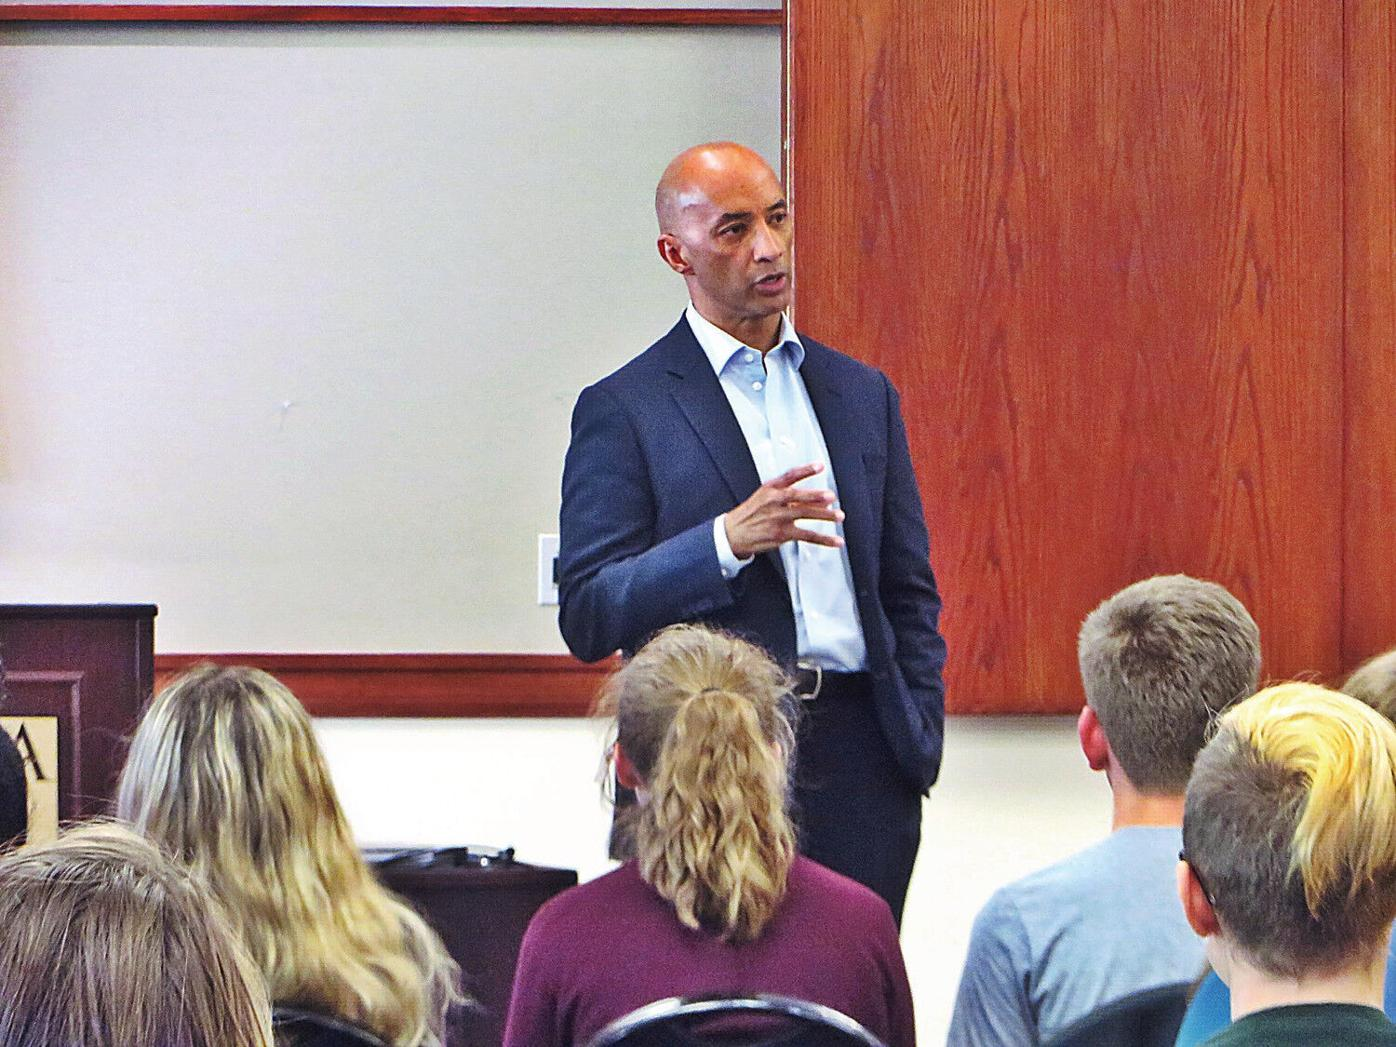 HARDMAN LECTURE | Byron Pitts at MCLA: 'The job of a journalist is to give voice to people like me'